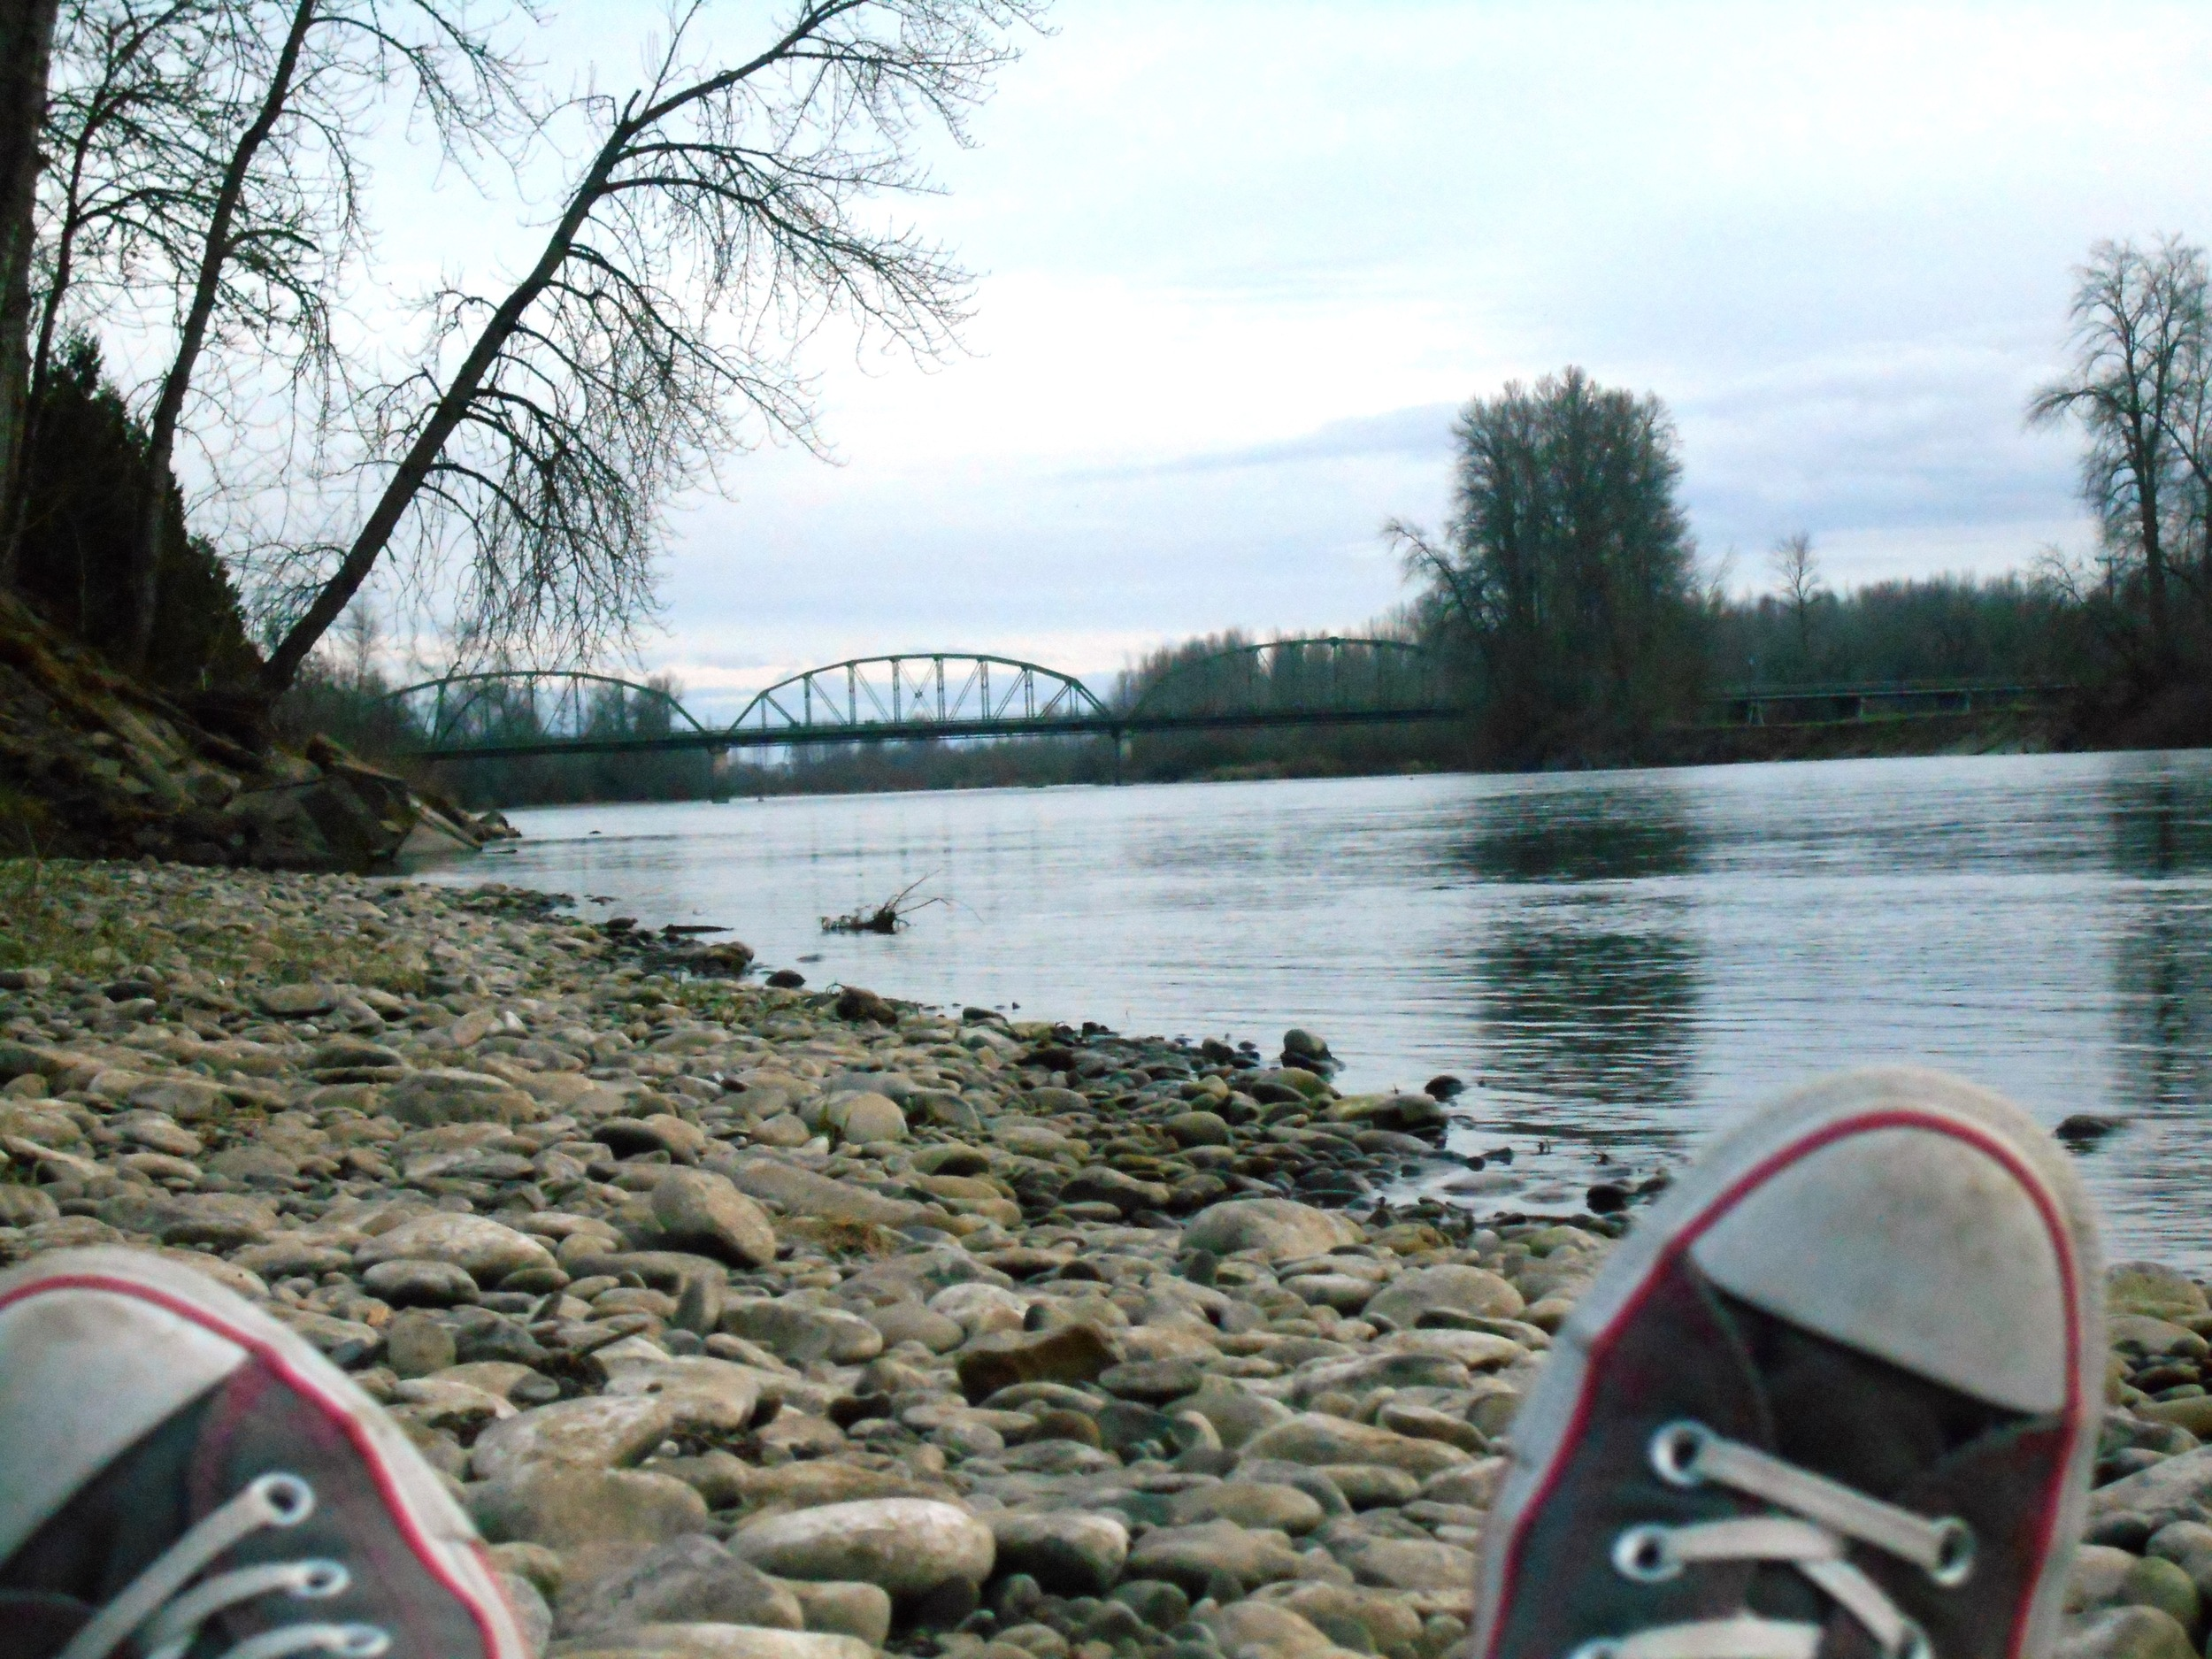 Chillin' by the River